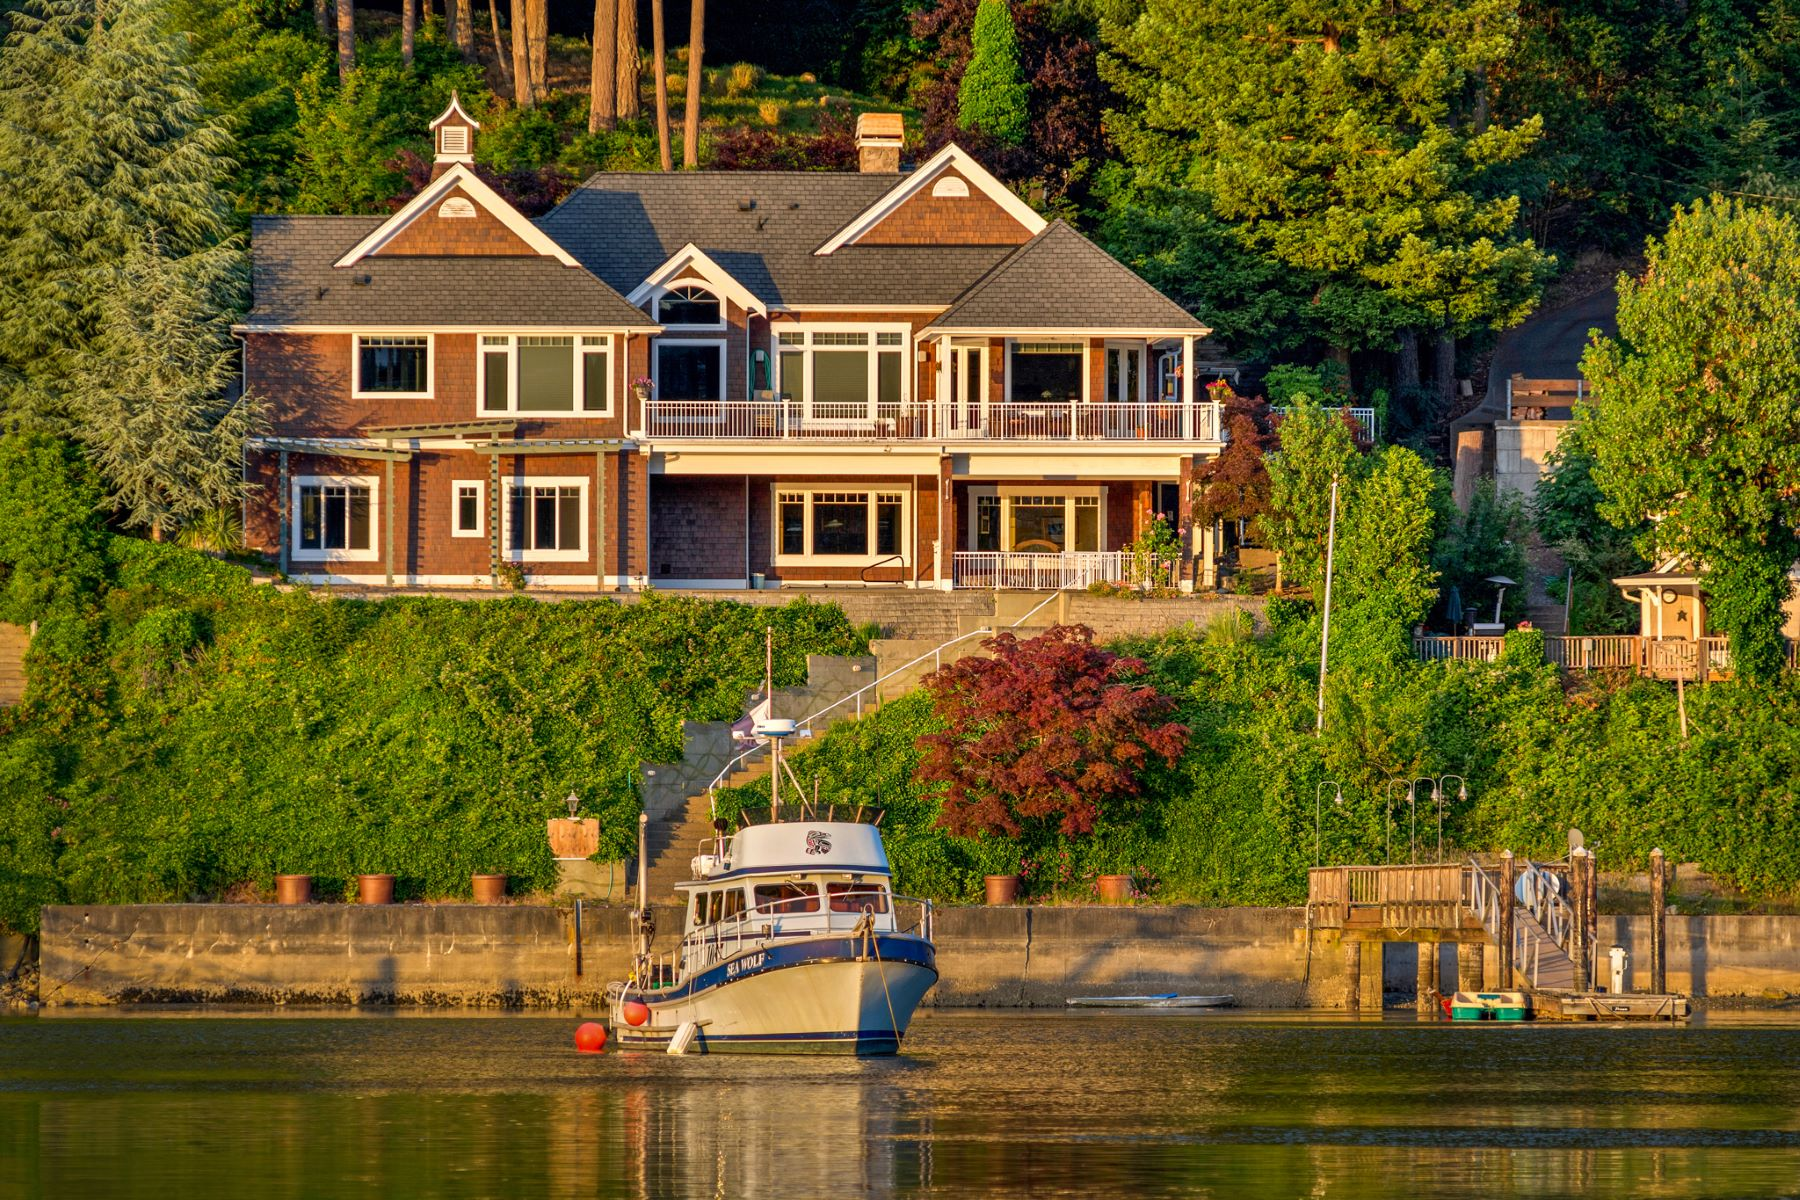 Villa per Vendita alle ore Gig Harbor Waterfront Living 8104 Goodman Drive Gig Harbor, Washington, 98335 Stati Uniti